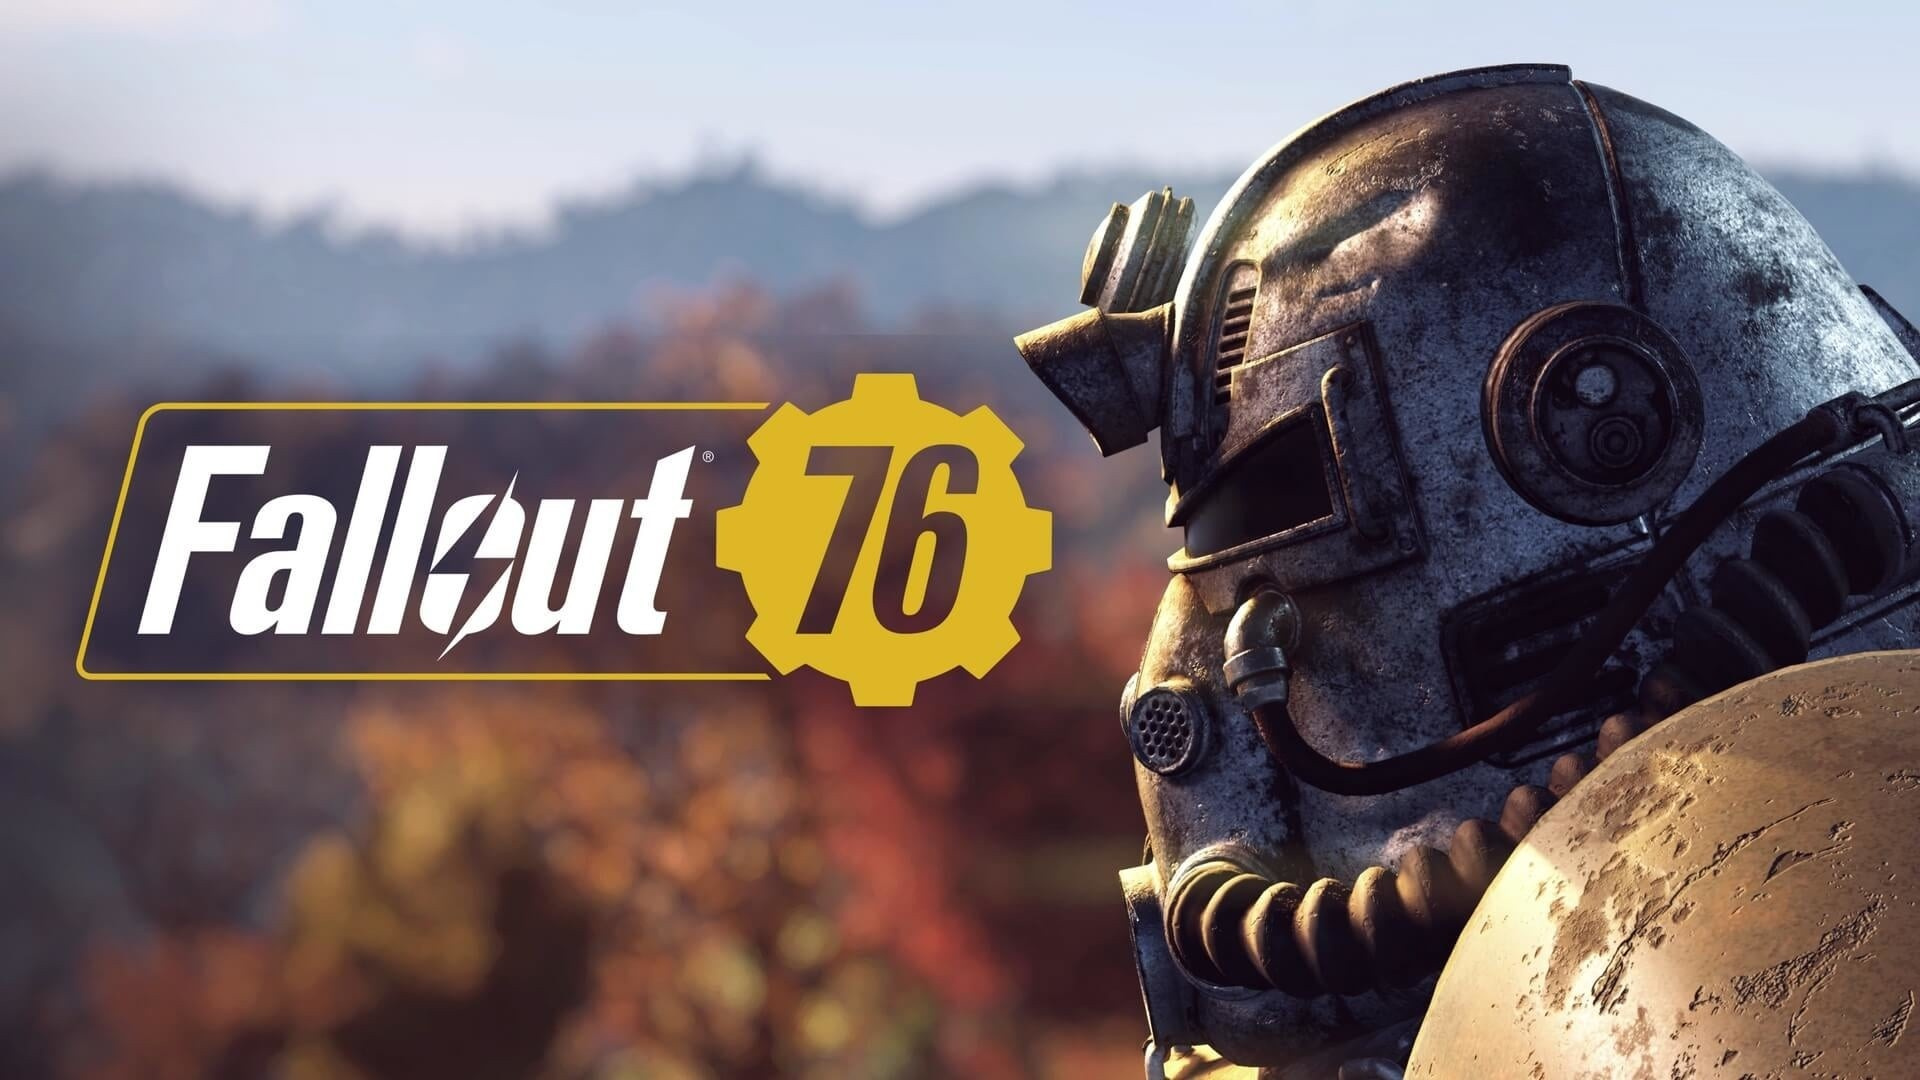 Fallout 76 High Quality